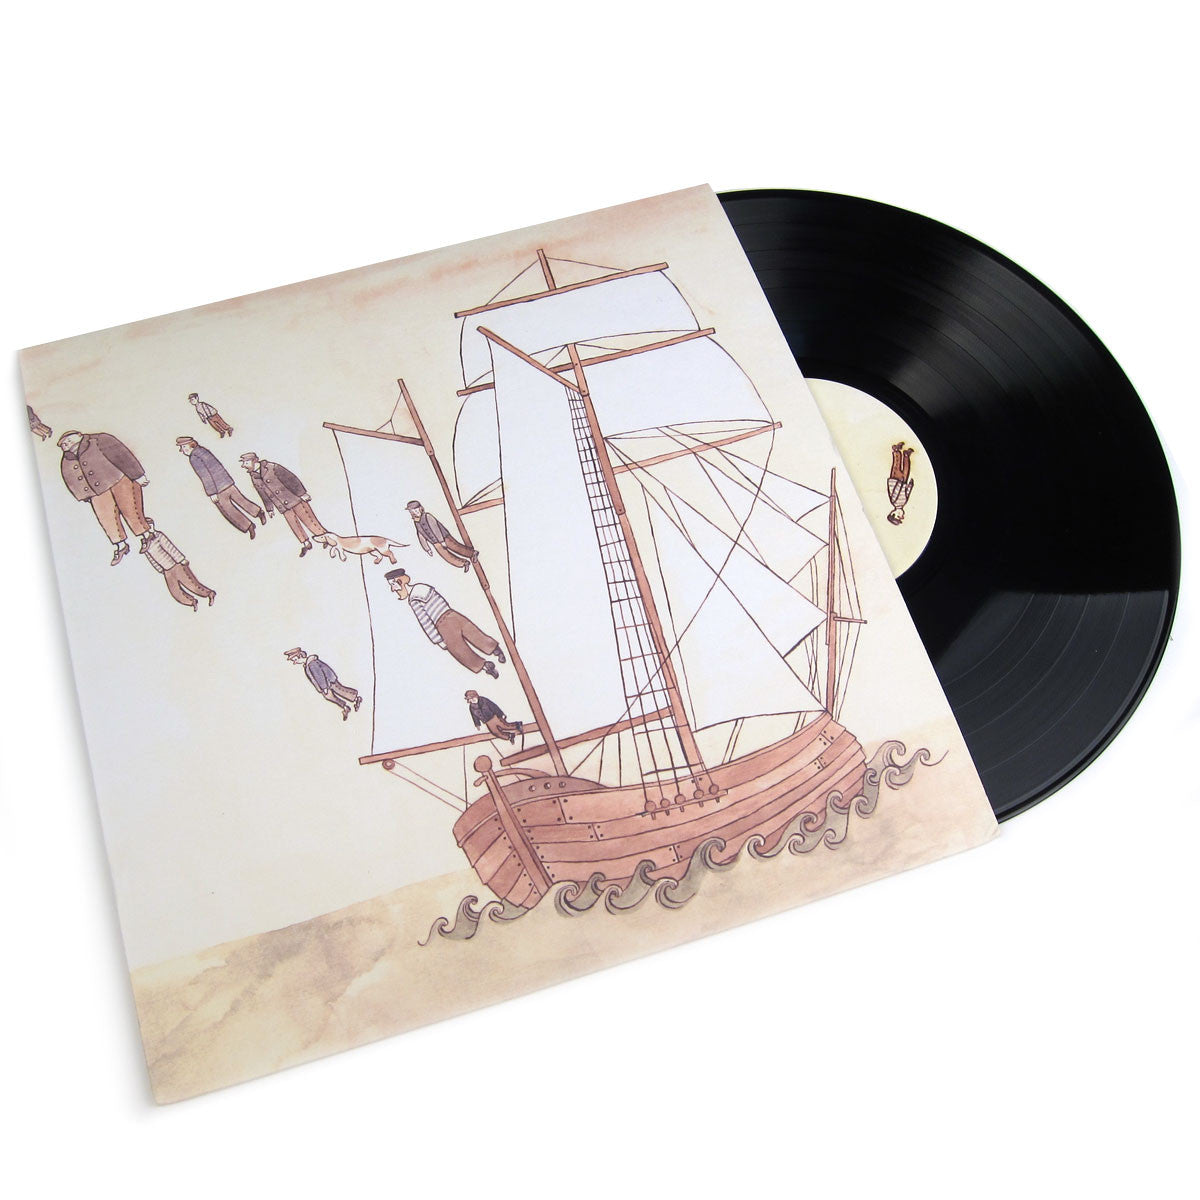 The Decemberists: Castaways And Cutouts (180g) Vinyl LP